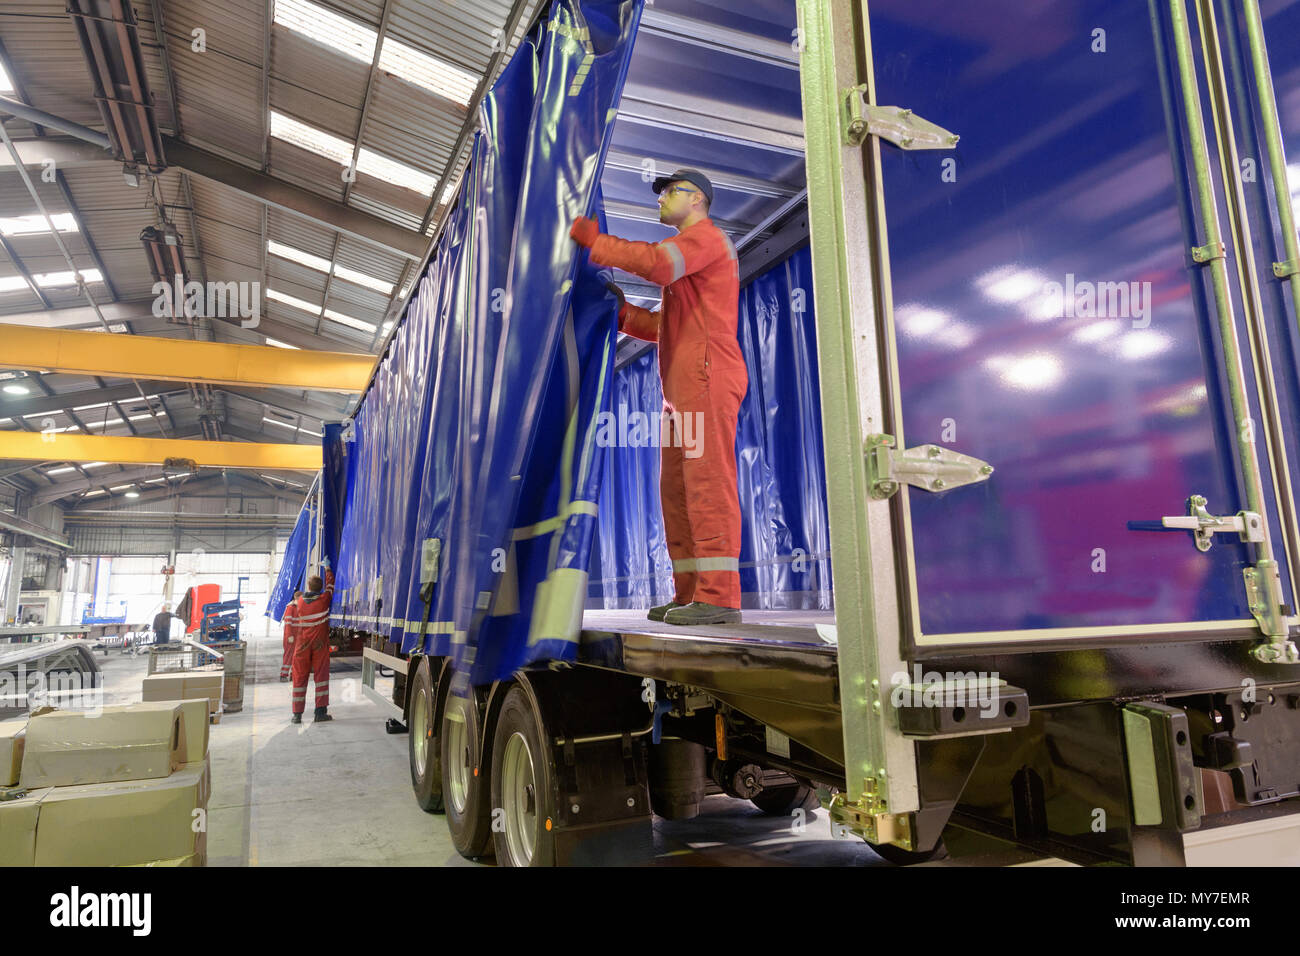 Worker fitting curtain side to trailer on production line in trailer factory - Stock Image